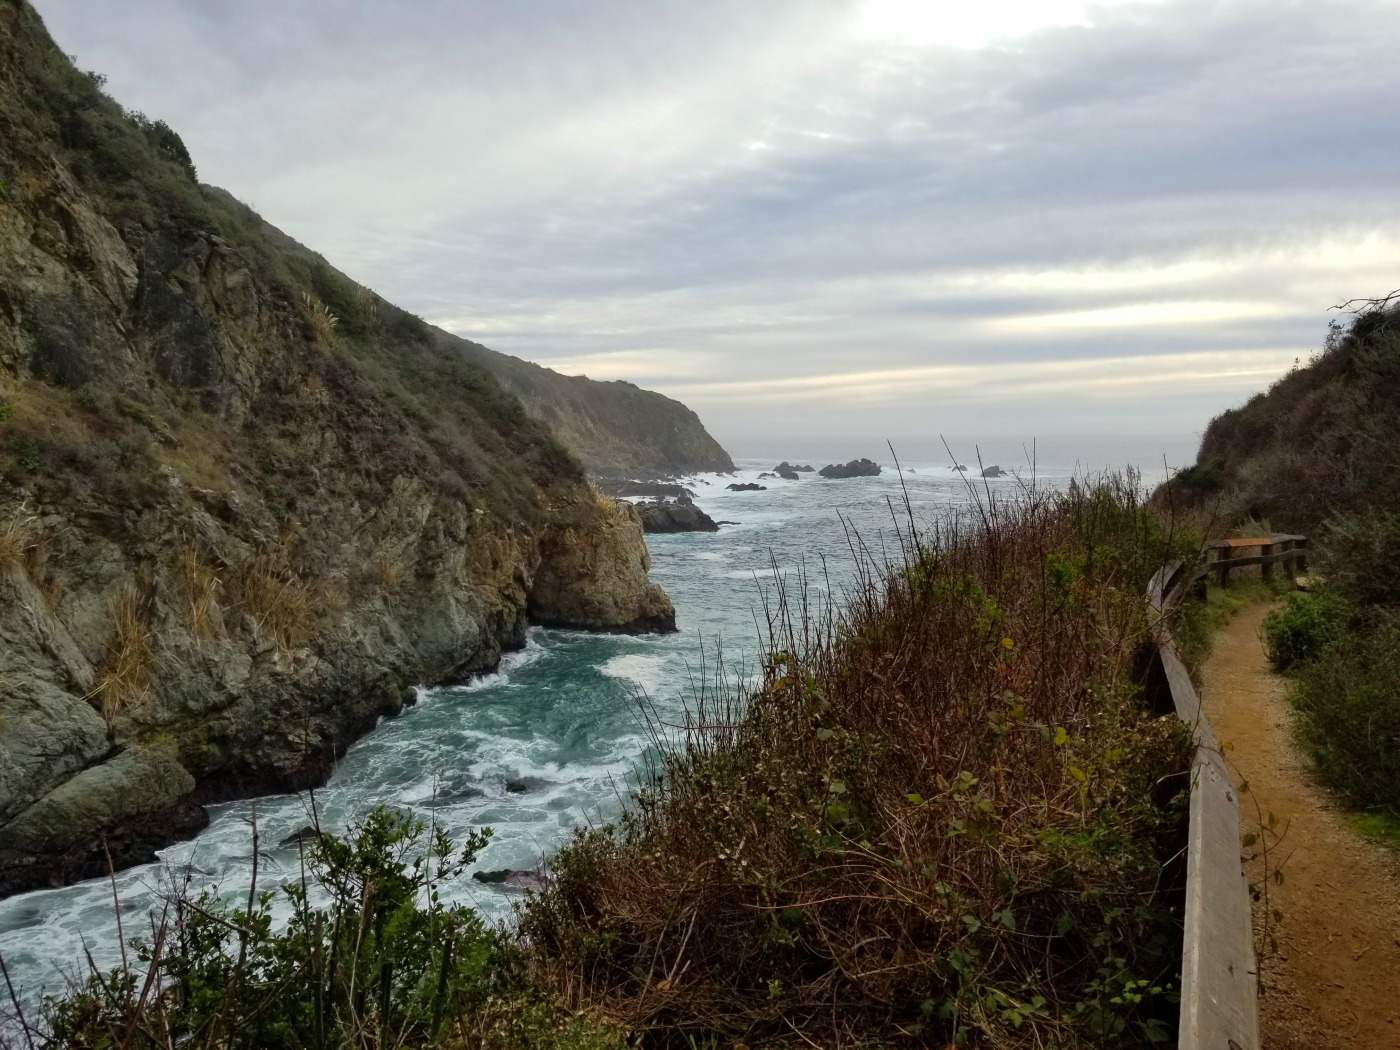 View of Partington Cove from a cliffside trail on a cloudy day. Ocean waves are turbulent in the cove.